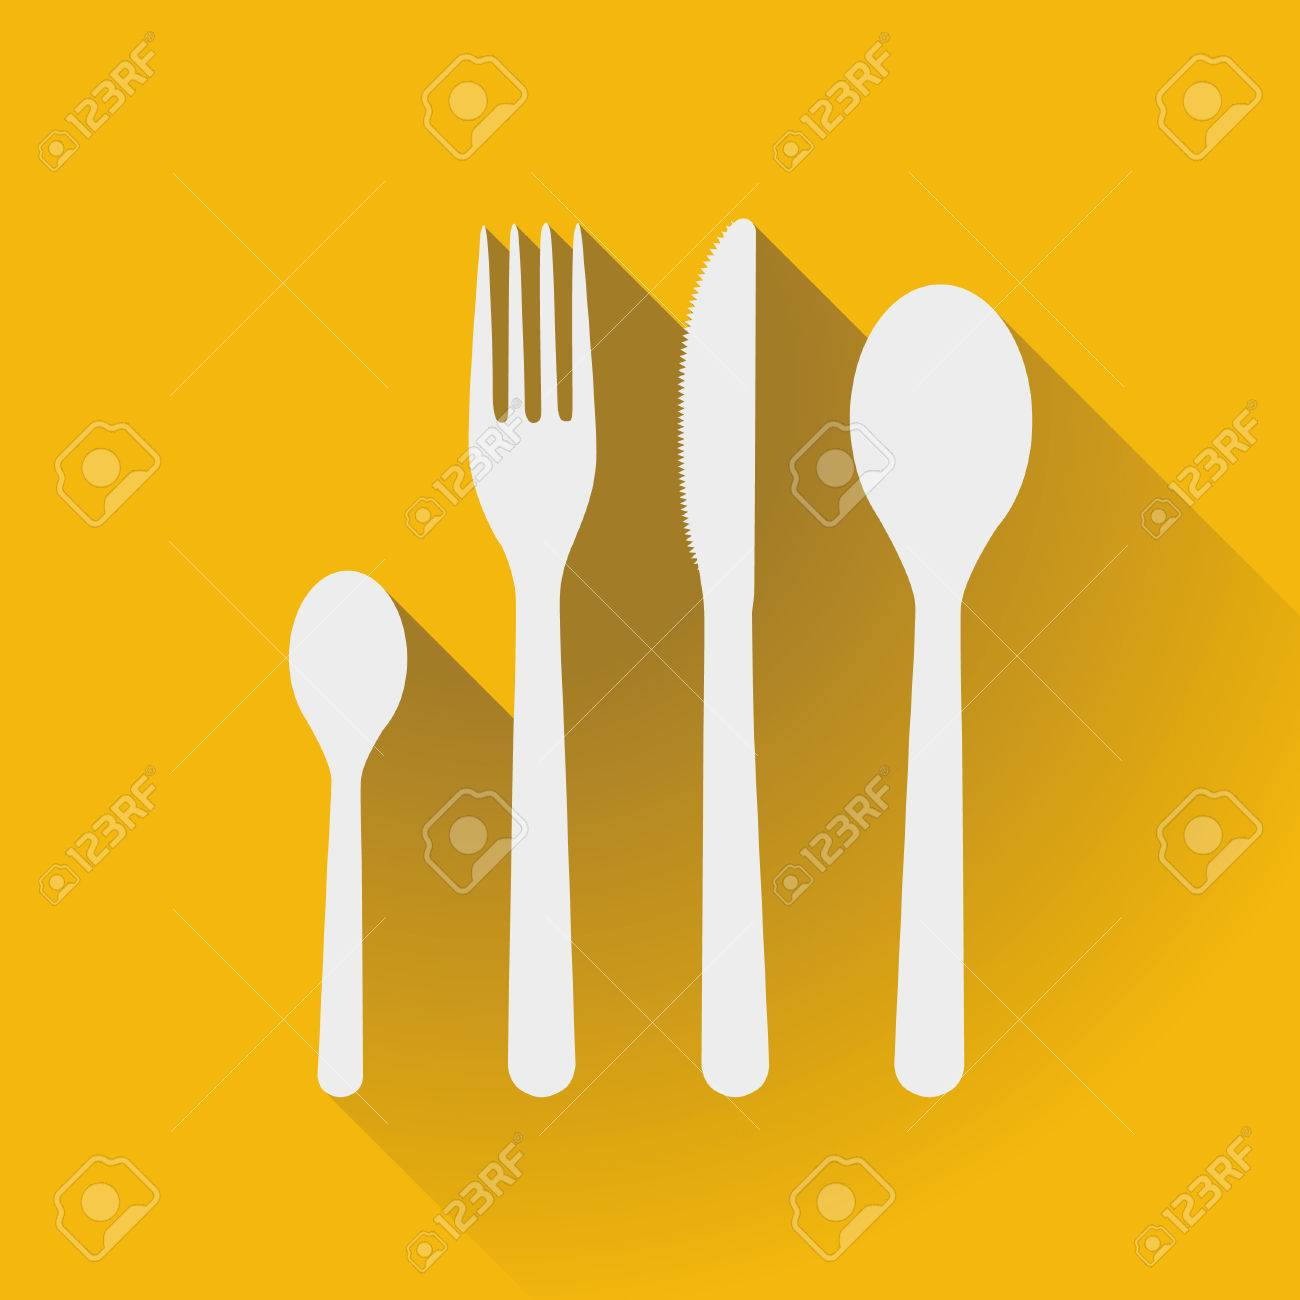 Flatware - spoons, fork and knife in a flat design - 53173948